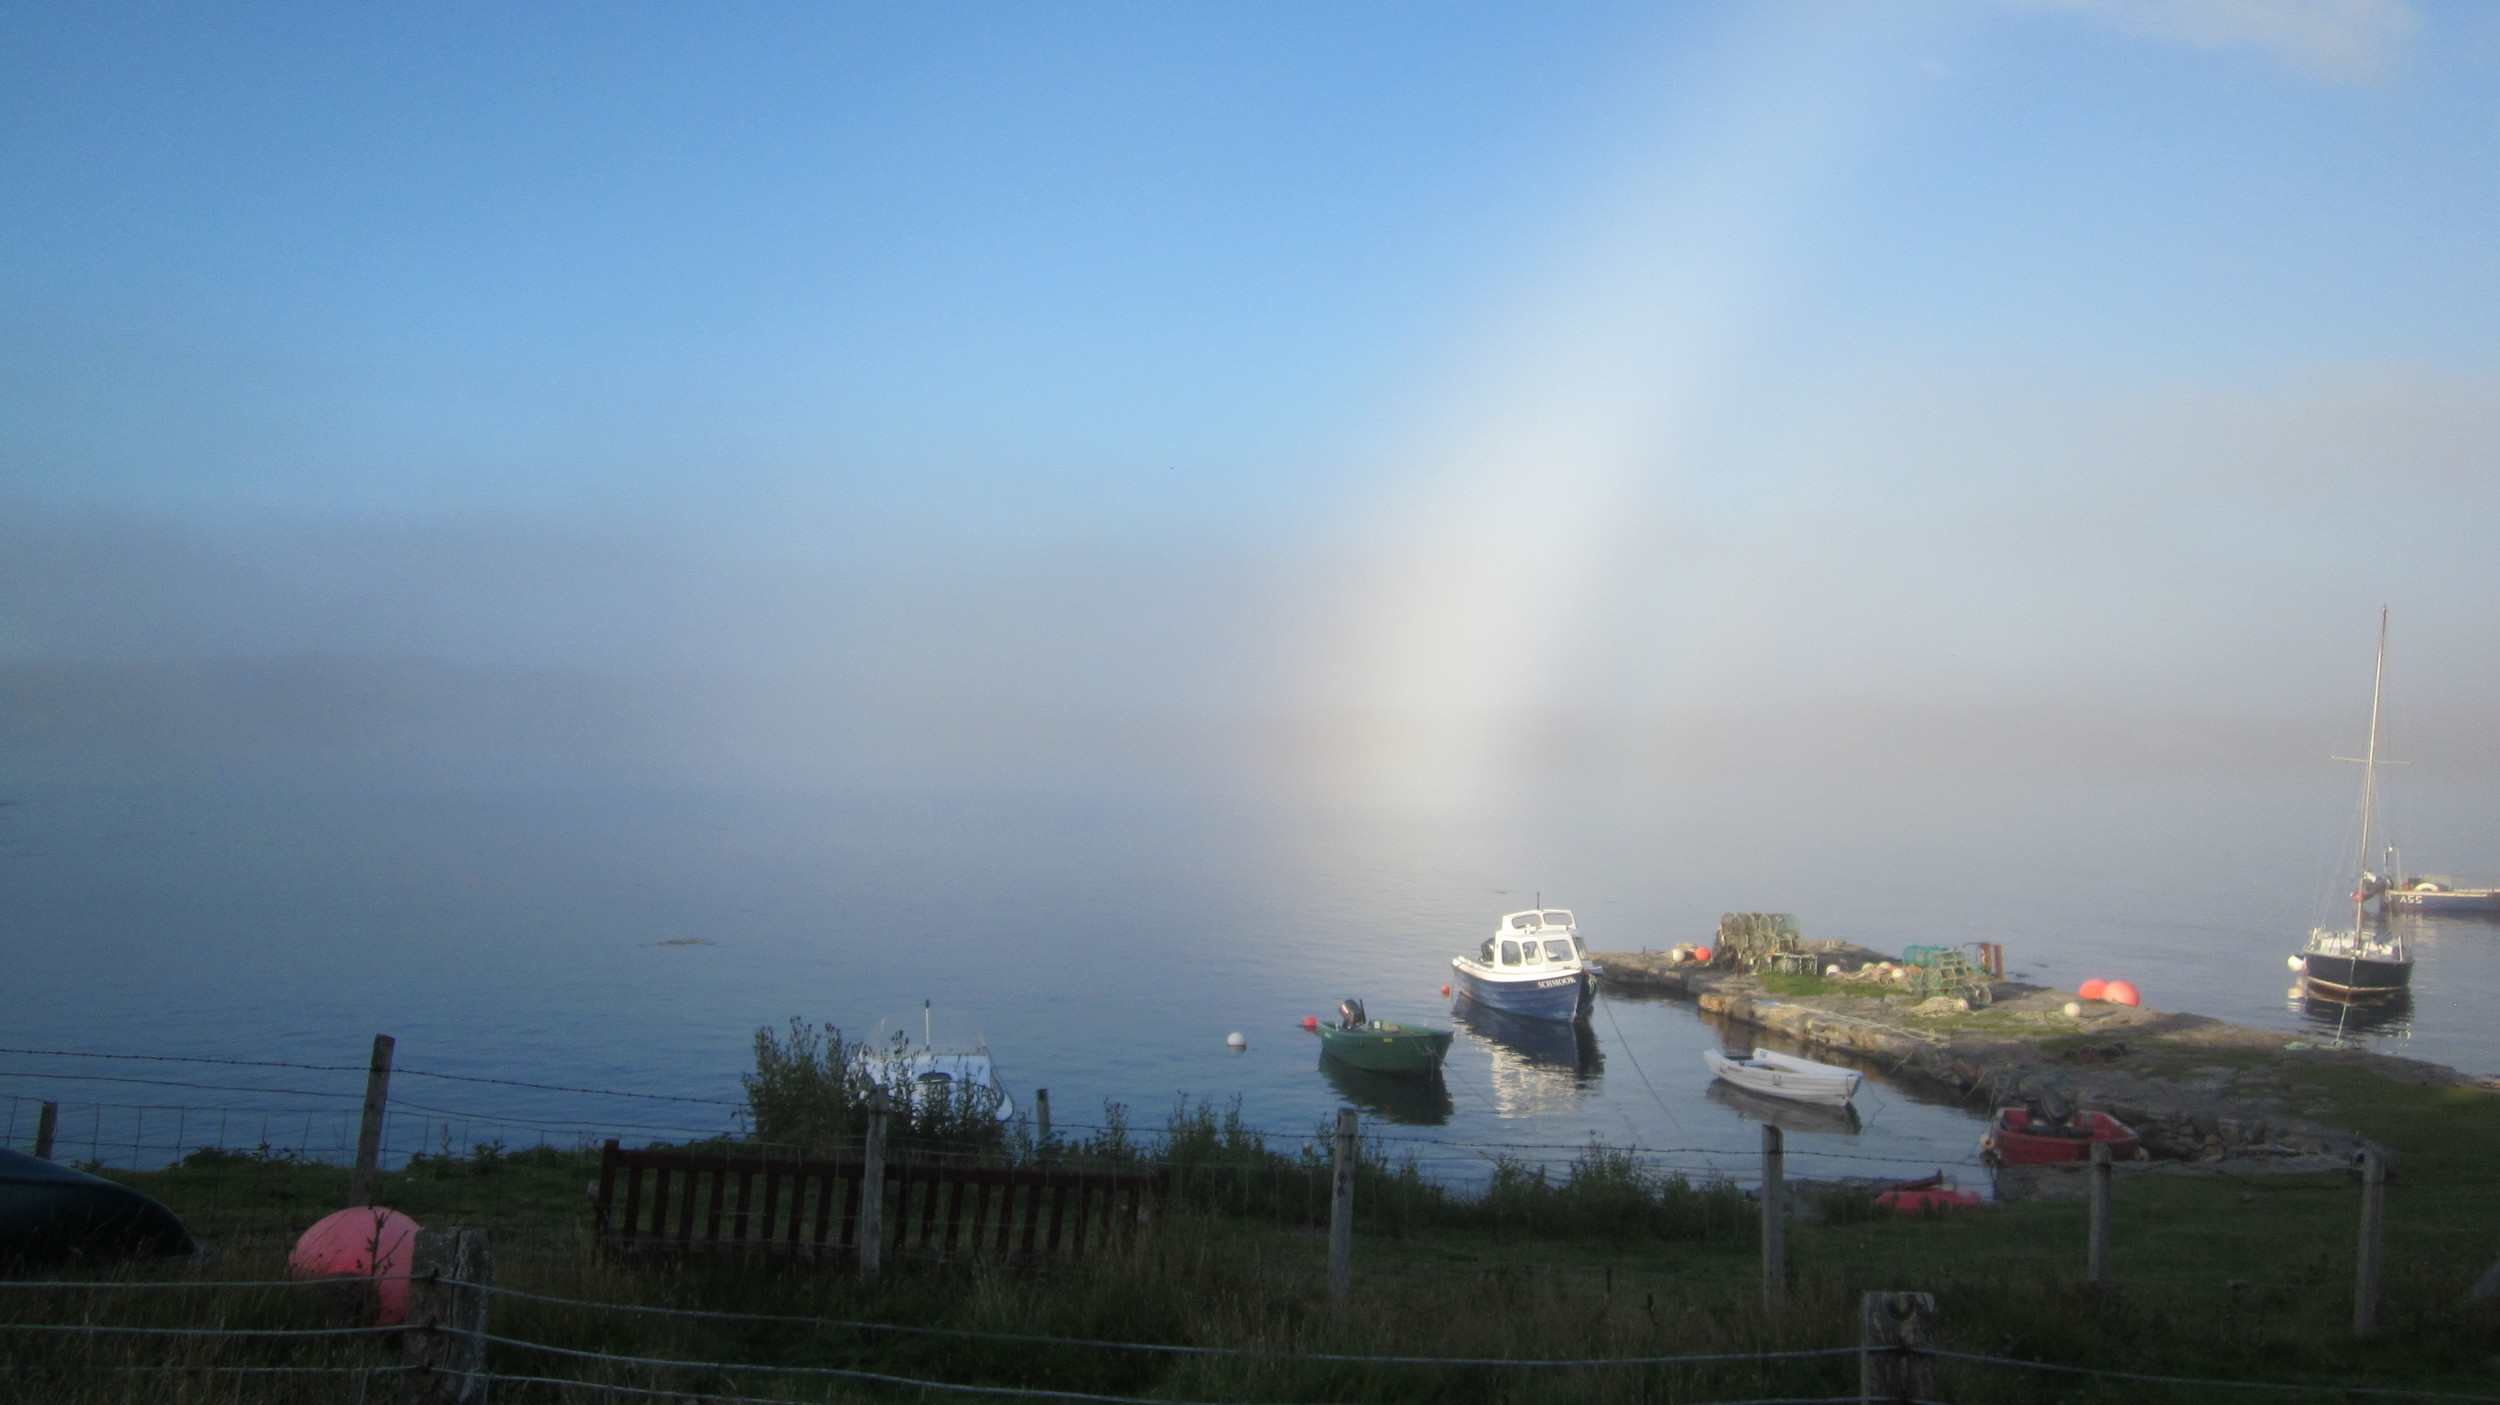 A fogbow over the old pier.